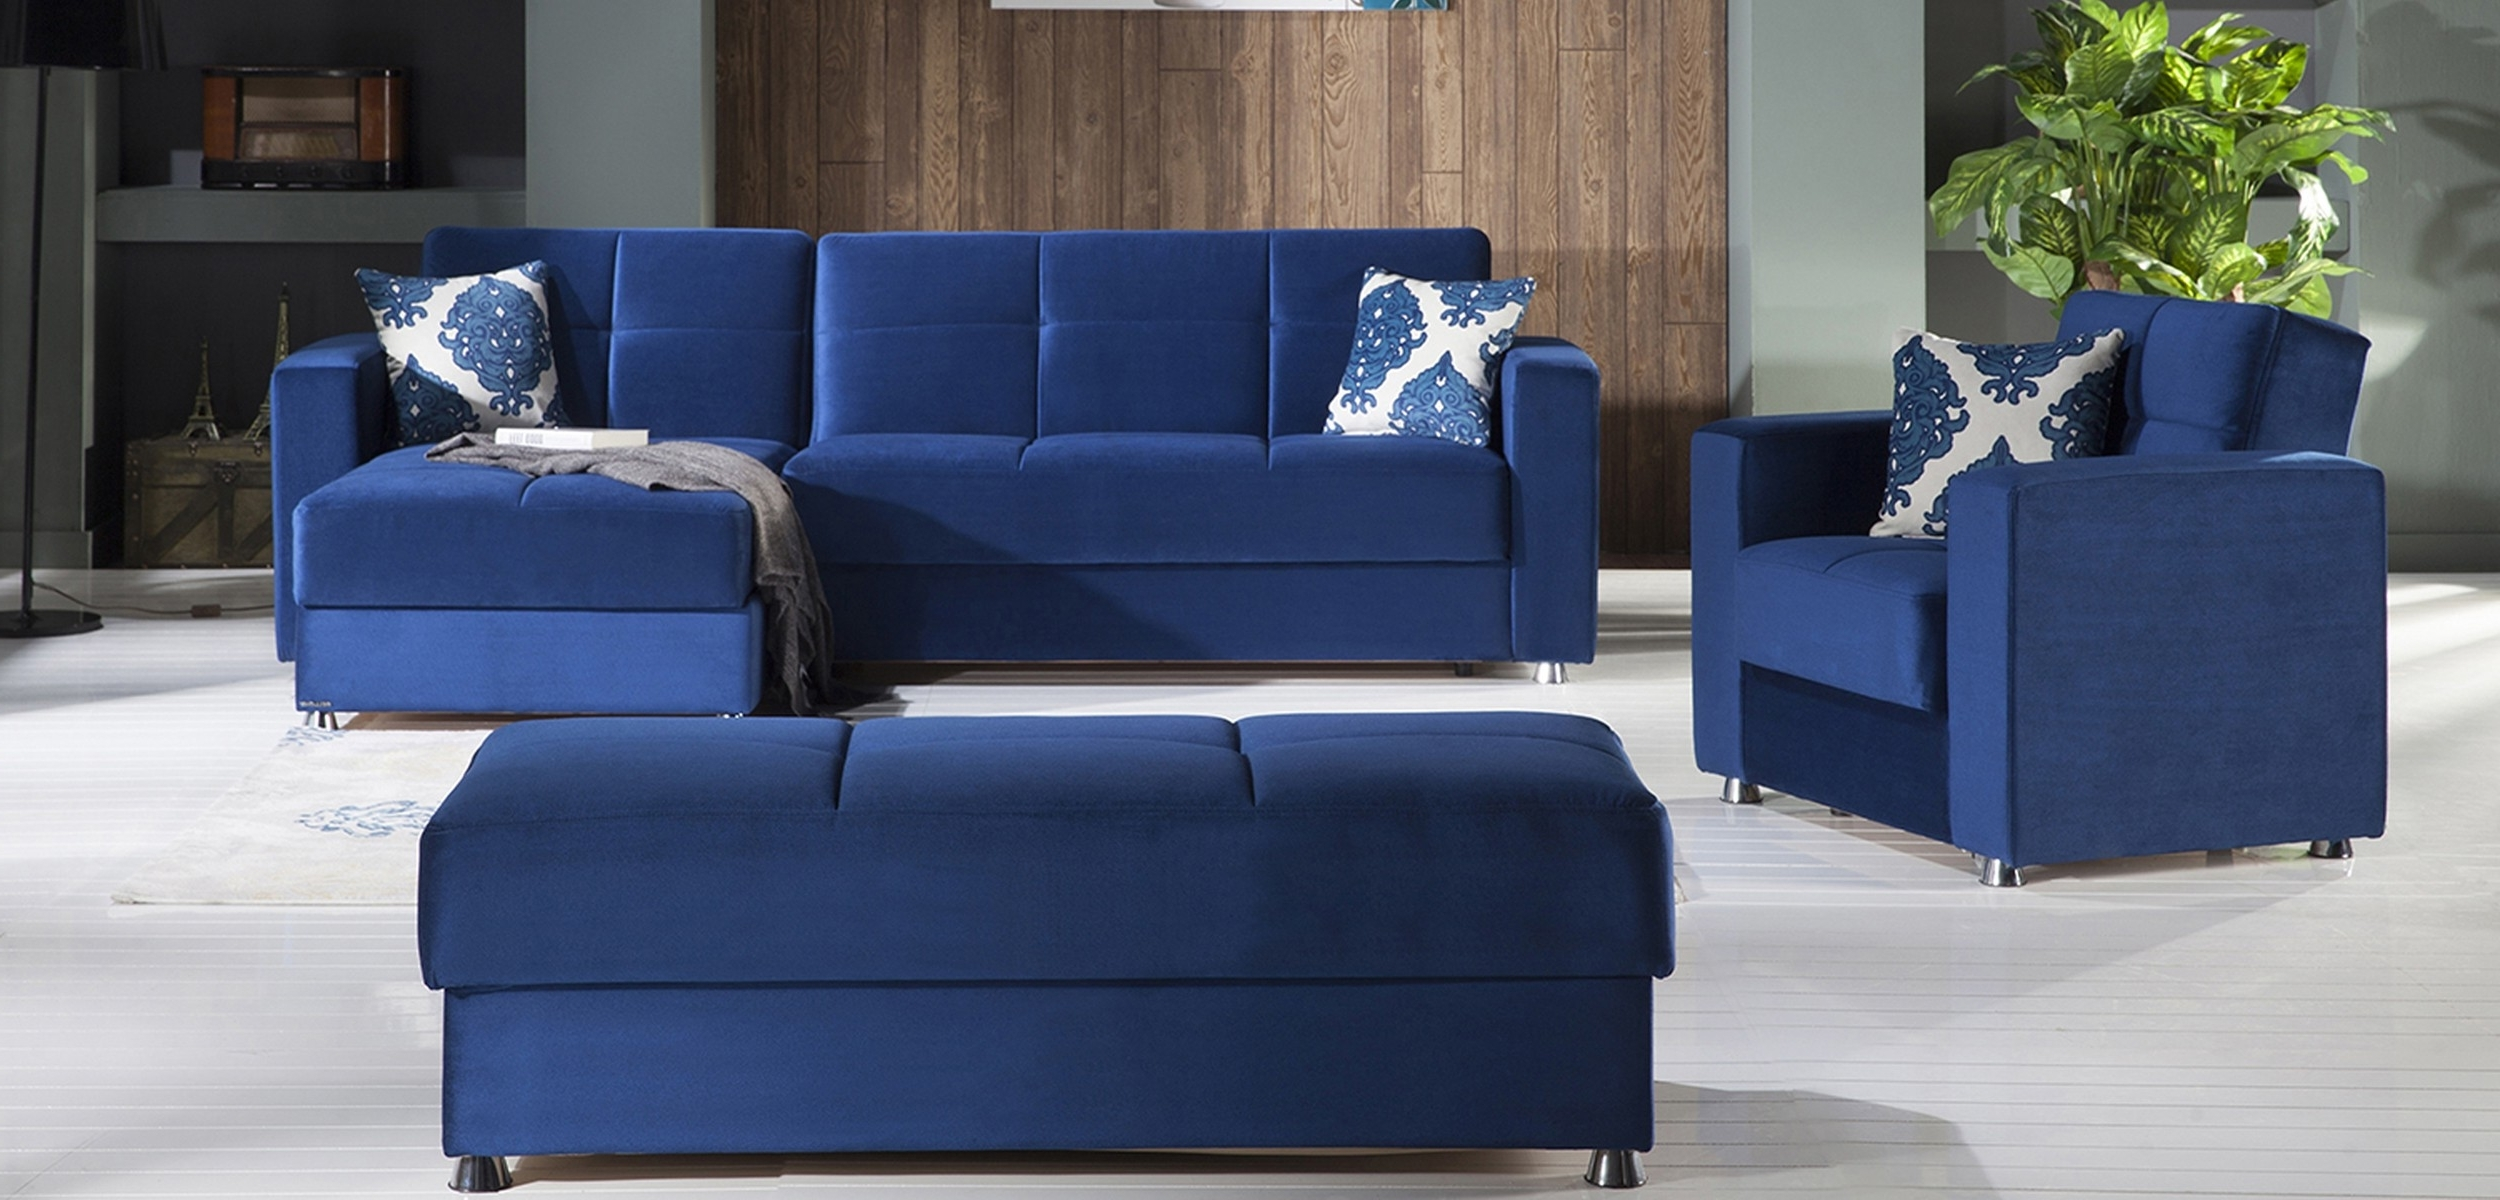 Best And Newest Elegant Convertible Sectional Sofa In Roma Navy Plainistikbal Regarding Convertible Sectional Sofas (View 2 of 20)